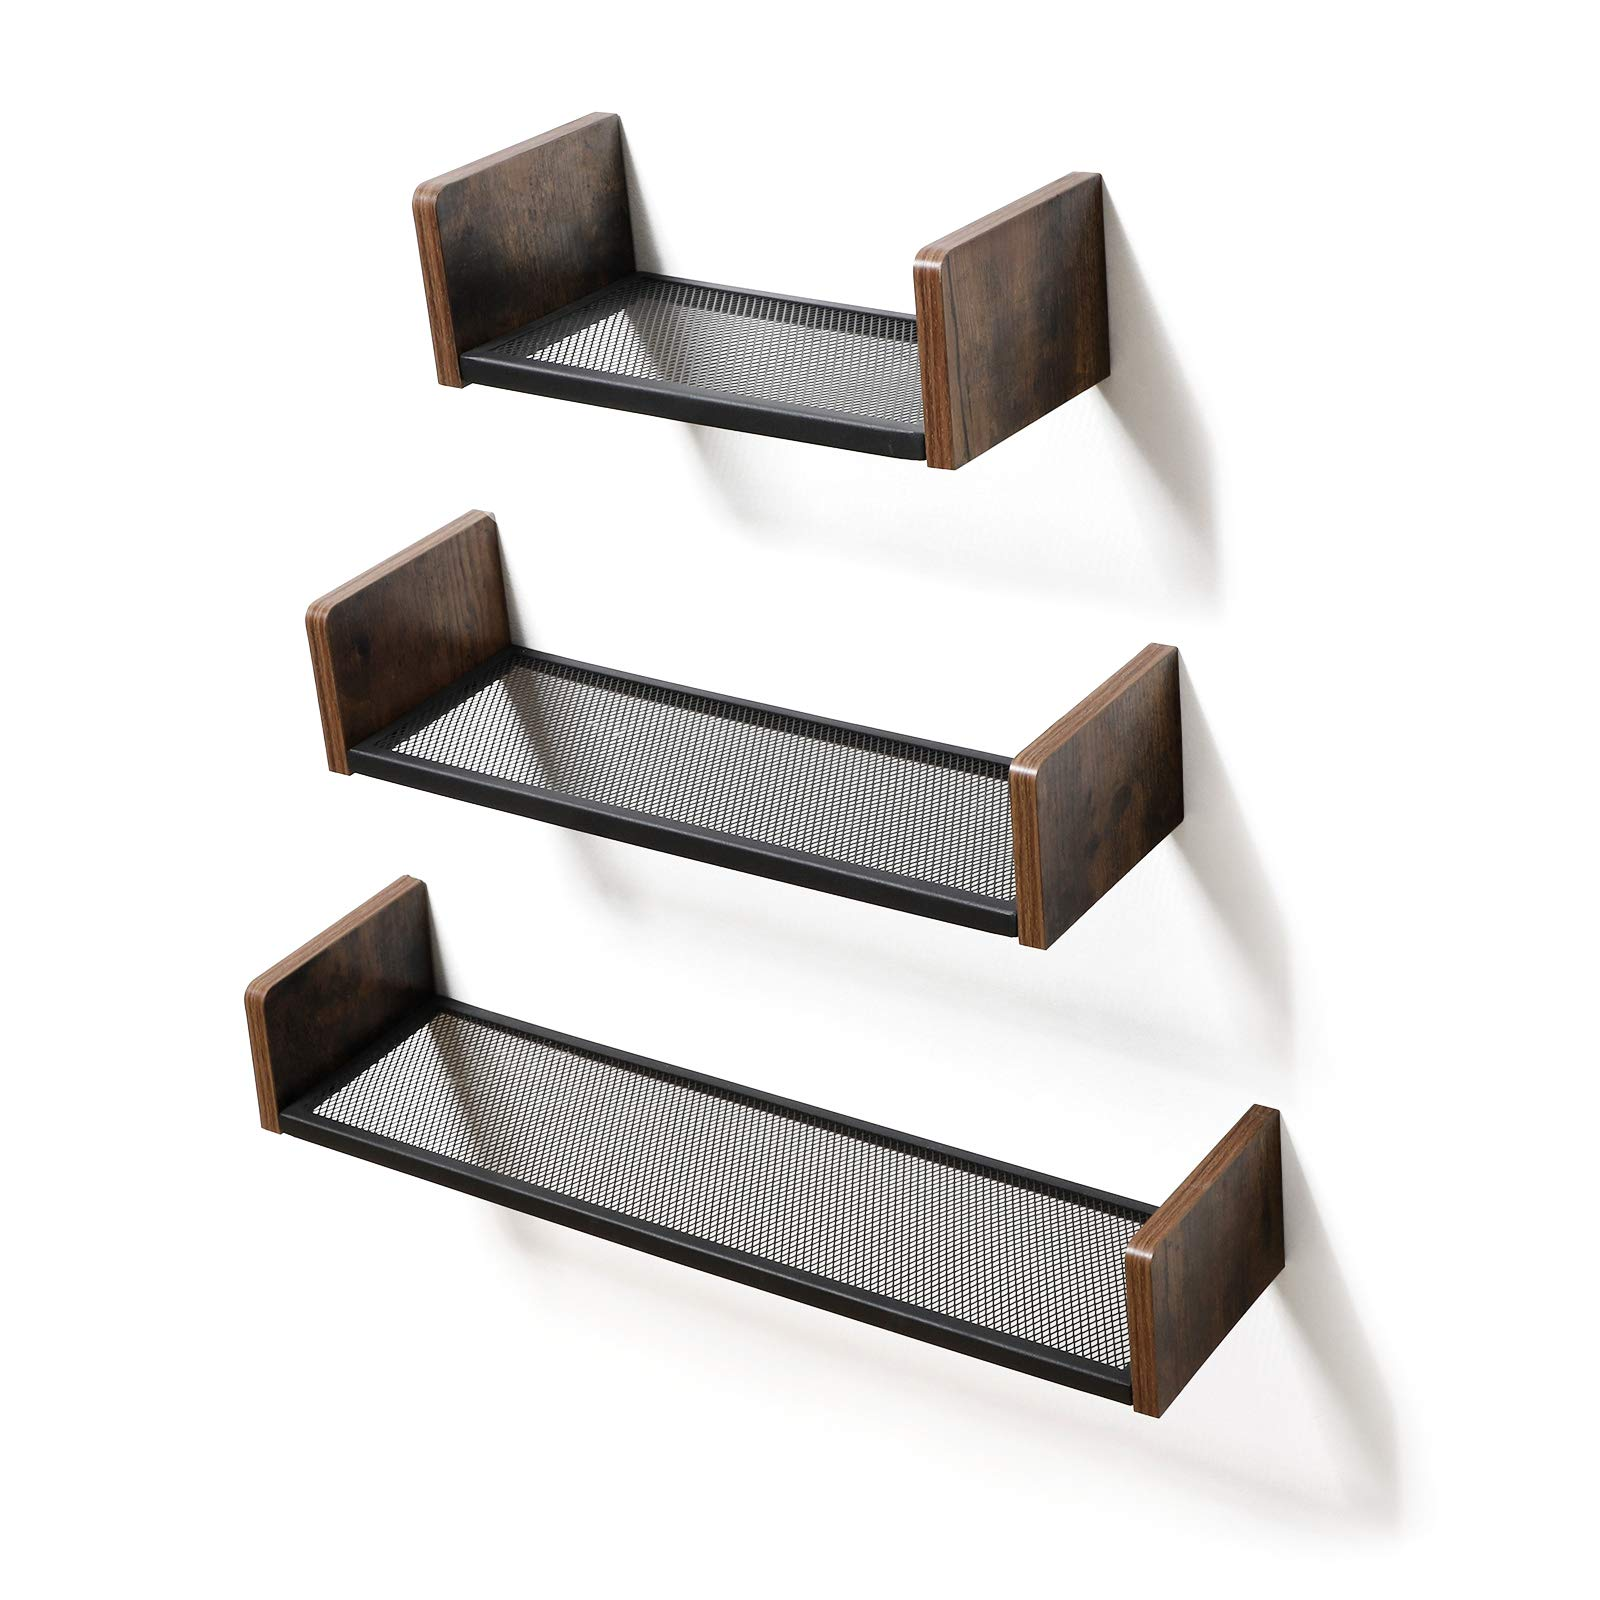 Vasagle Industrial Floating Shelves, Large Size Set Of 3 U-shaped Wall  Shelves For Photos, Decorations, In Living Room, Office, Hallway, Kitchen,